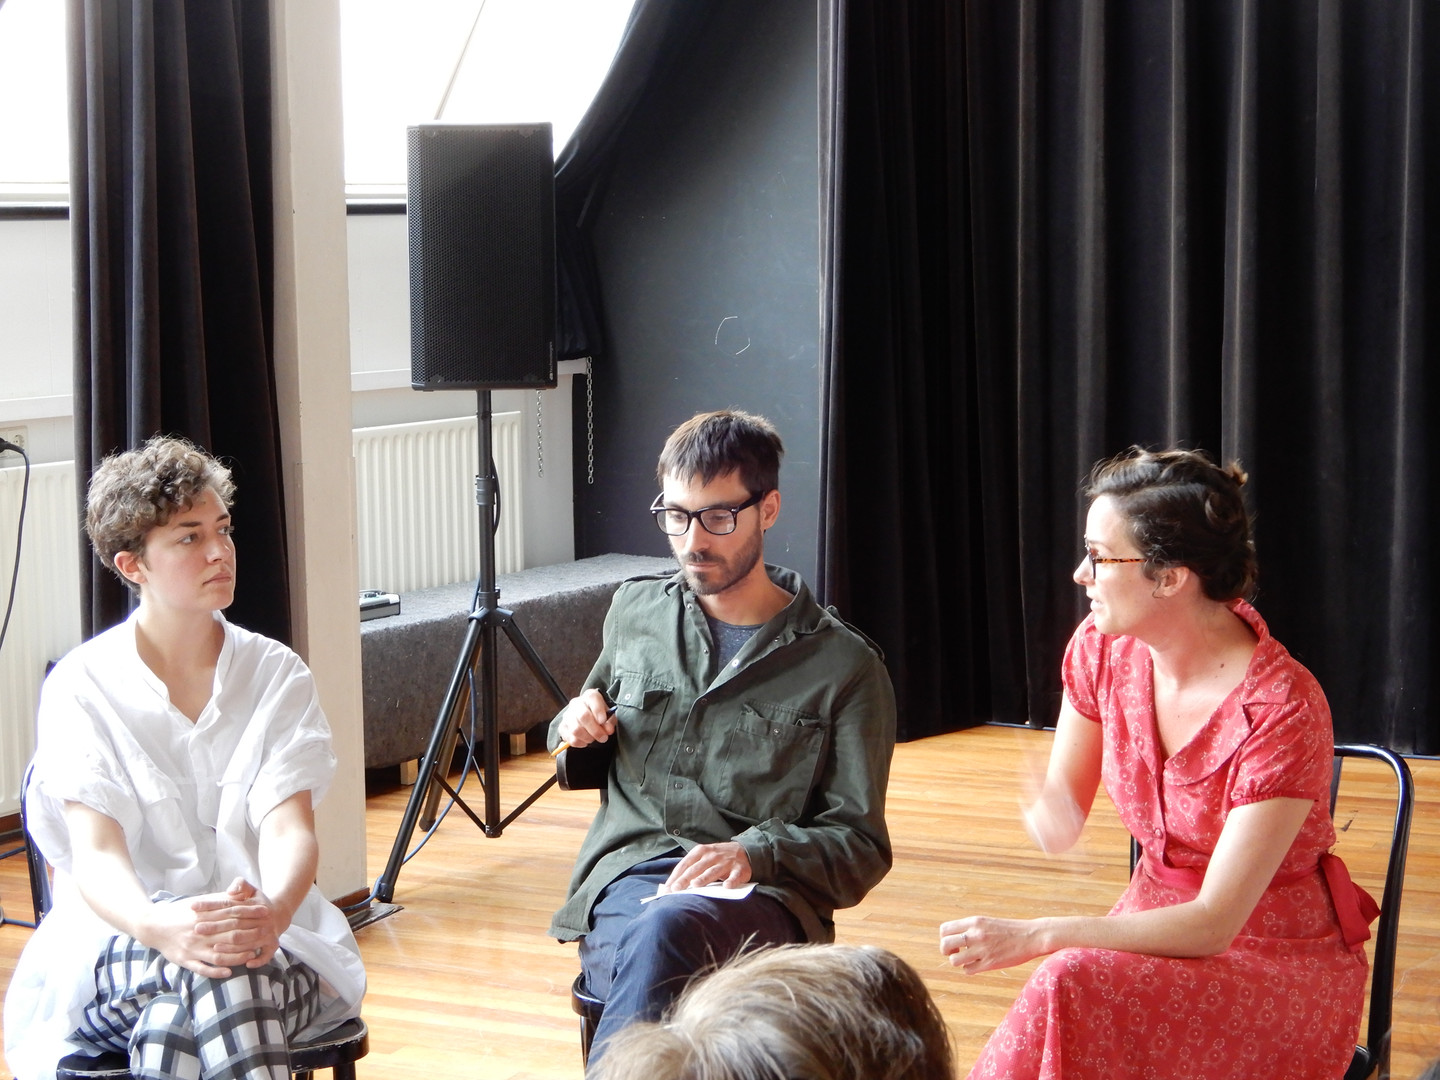 On Alterity, Panel Talk with with Anna Reutinger, Jessica and Ellen Algera